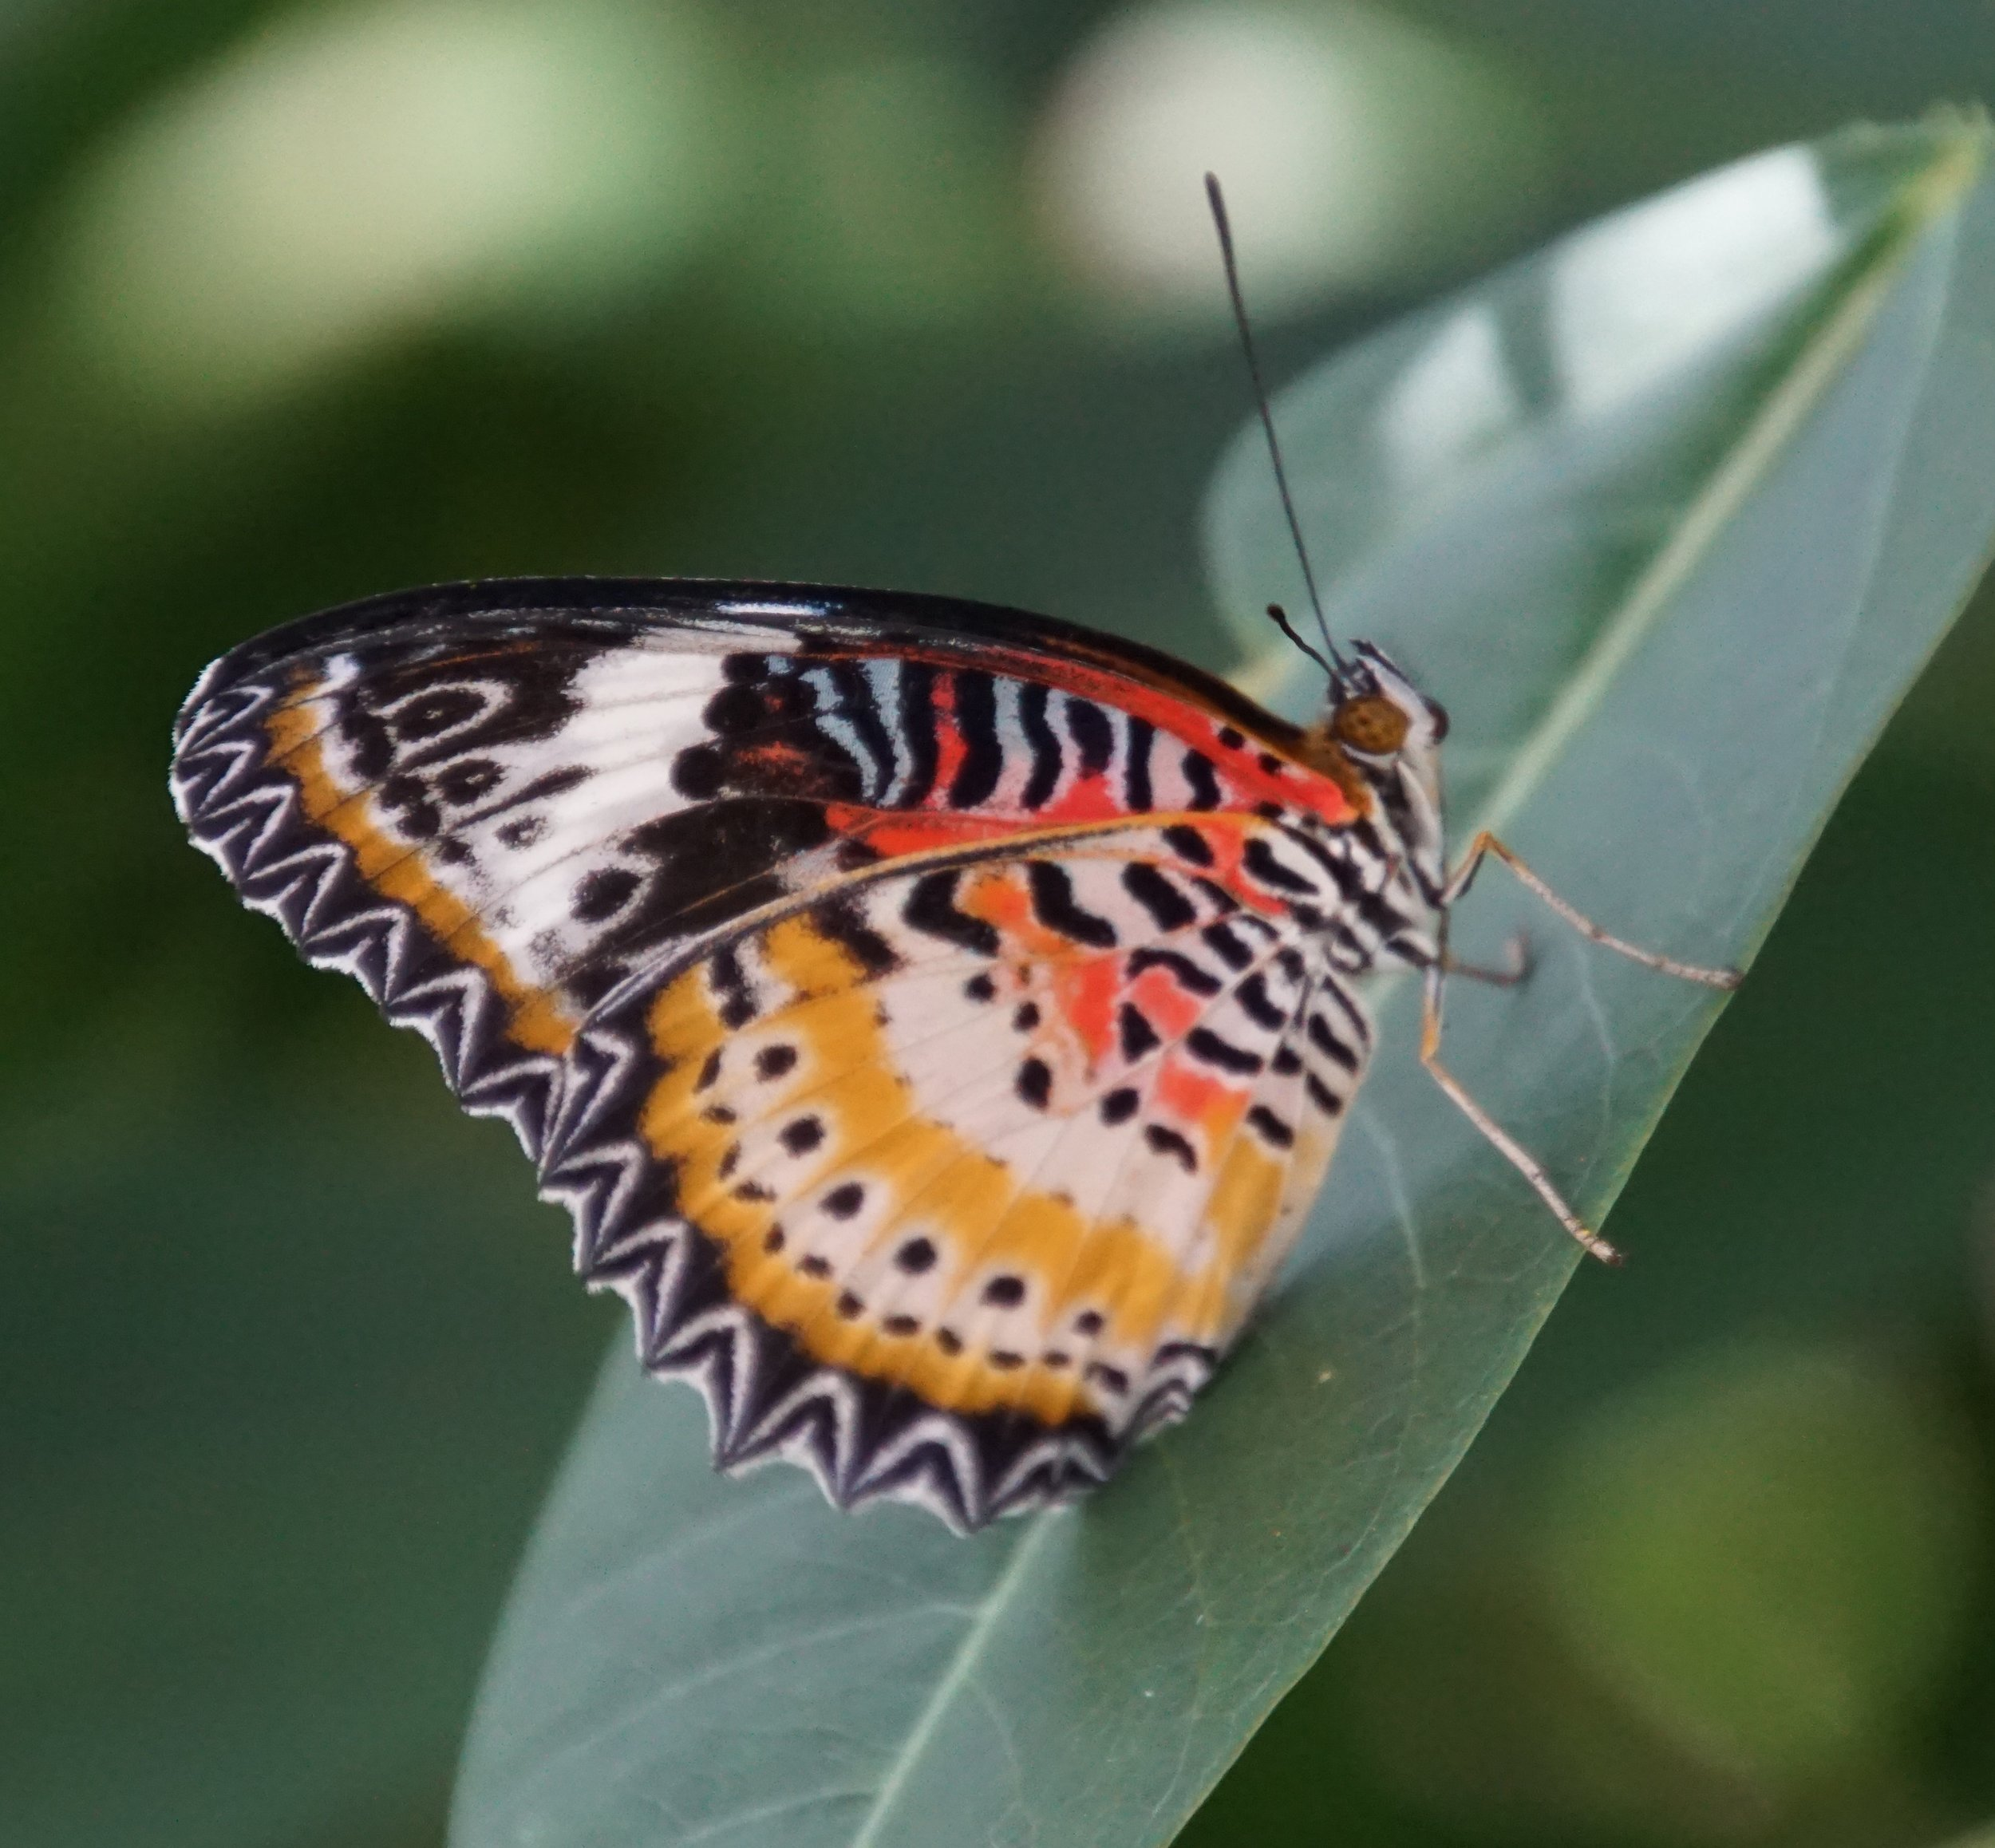 A leopard lacewing that is found in Asia.